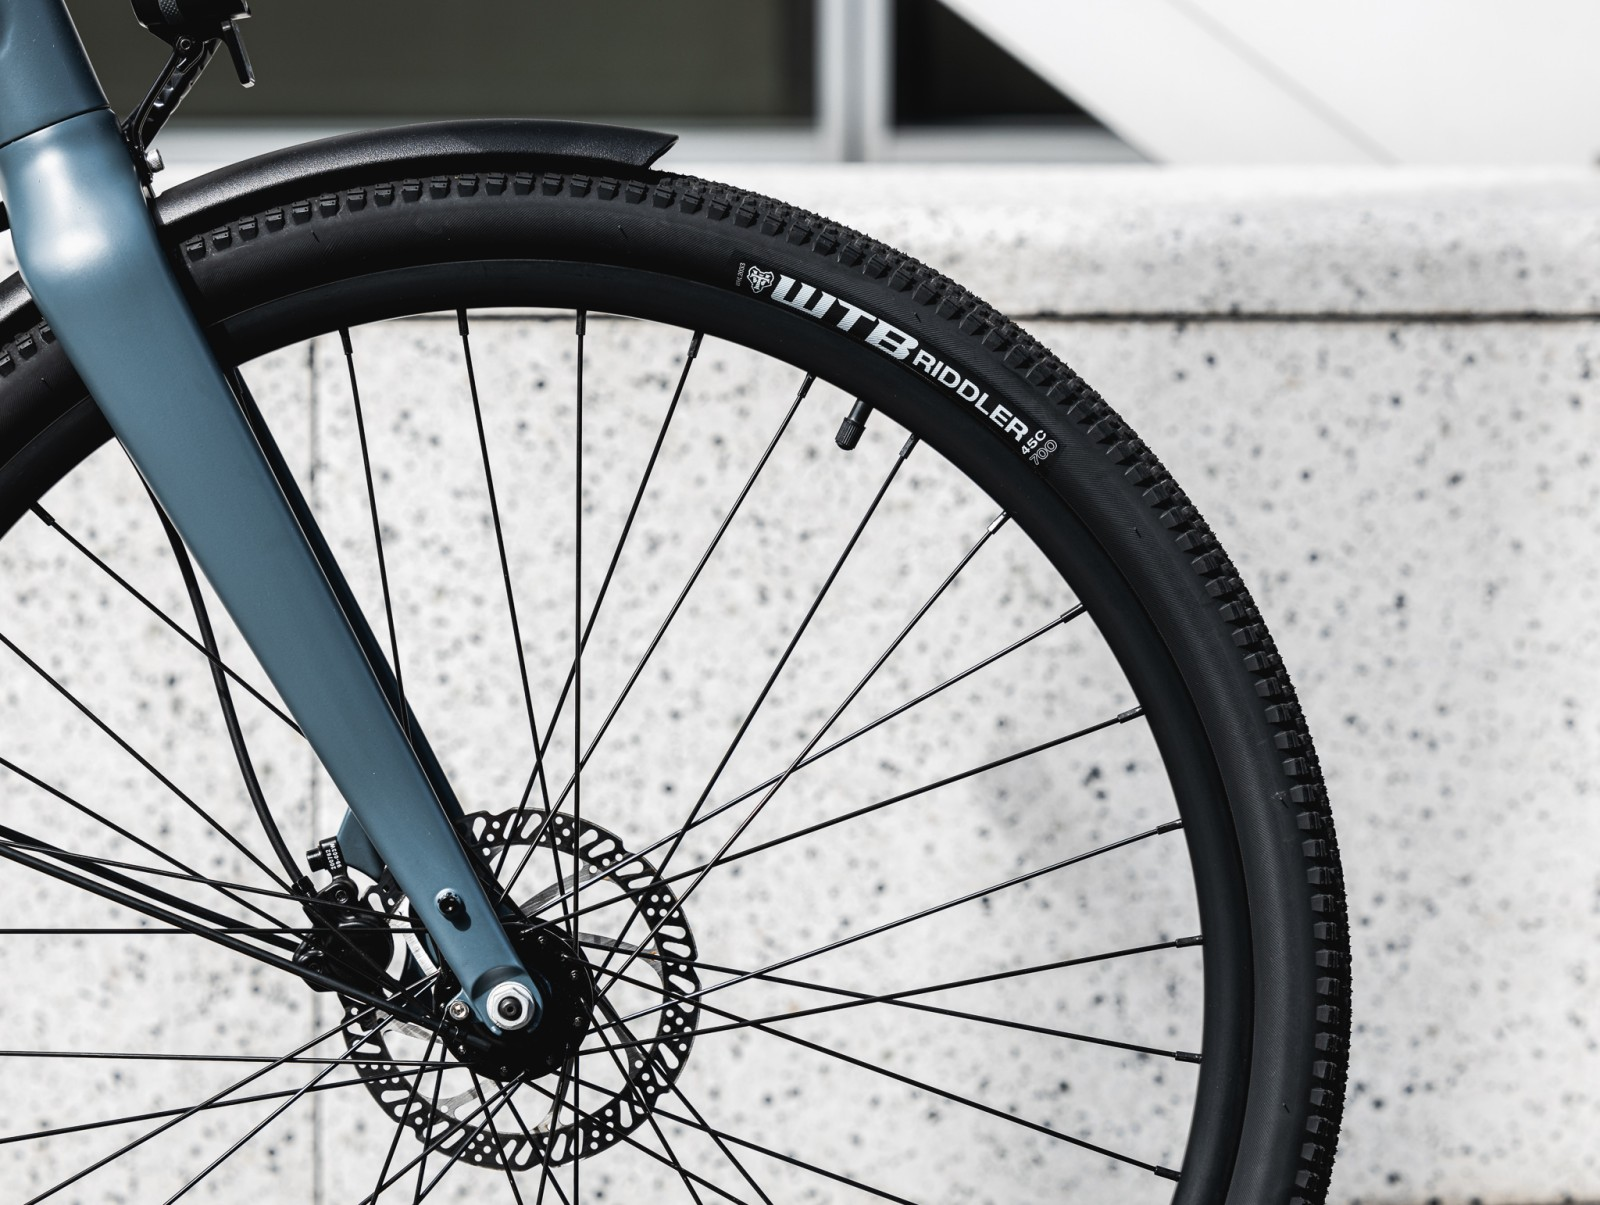 Close up of black bicycle tyre